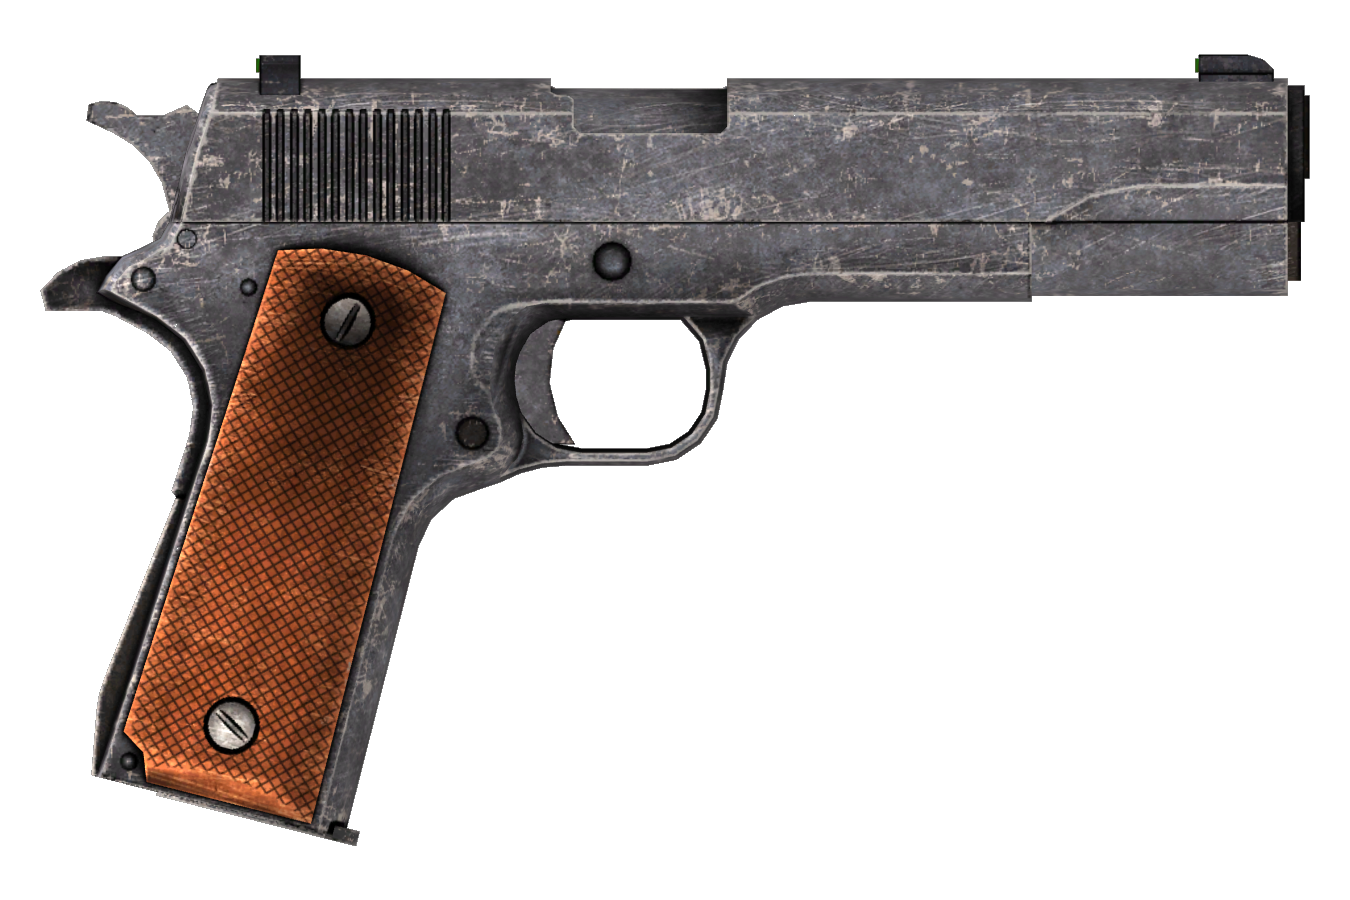 http://images.wikia.com/fallout/images/f/f3/.45_Auto_pistol_with_the_improved_sights_modification.png